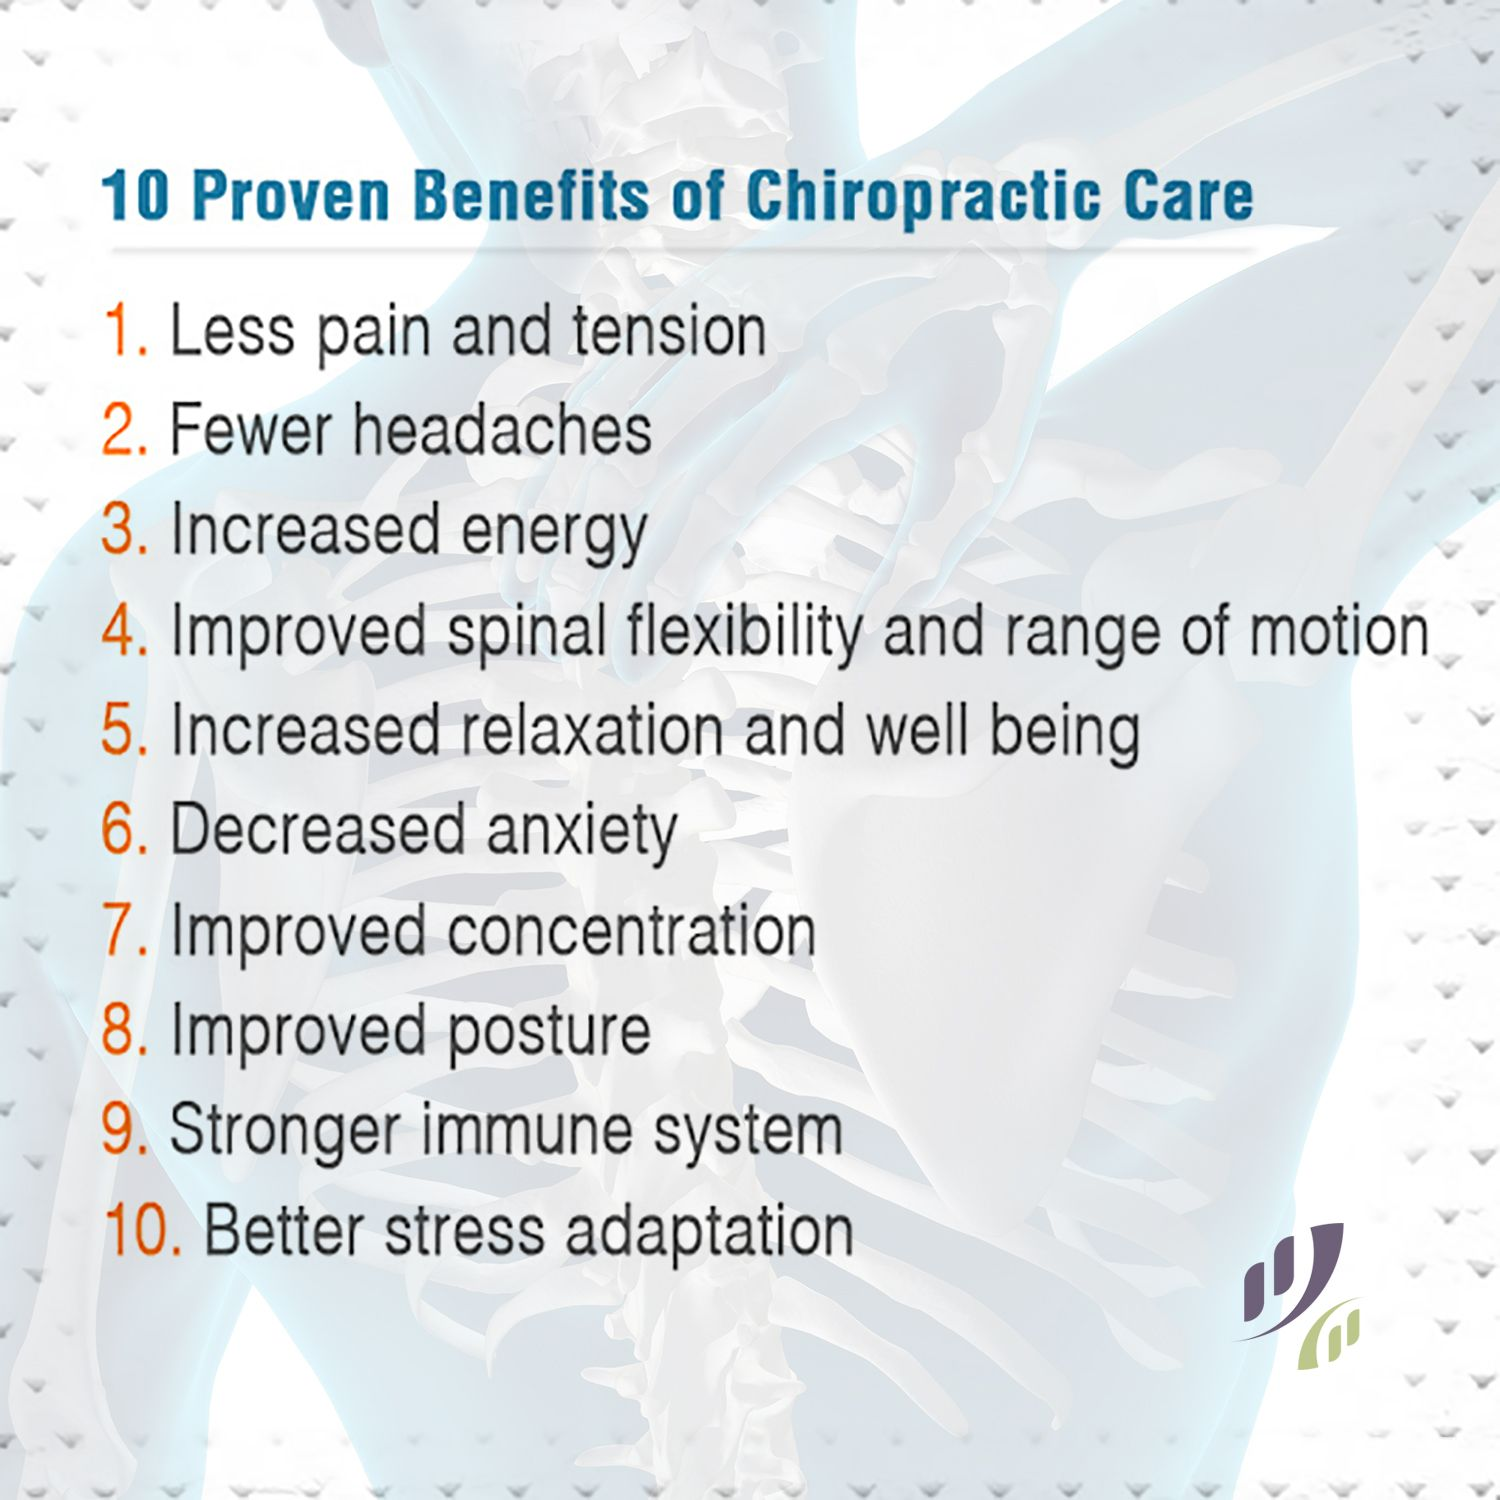 10 Proven Benefits of ChiropracticCare. chiropractic